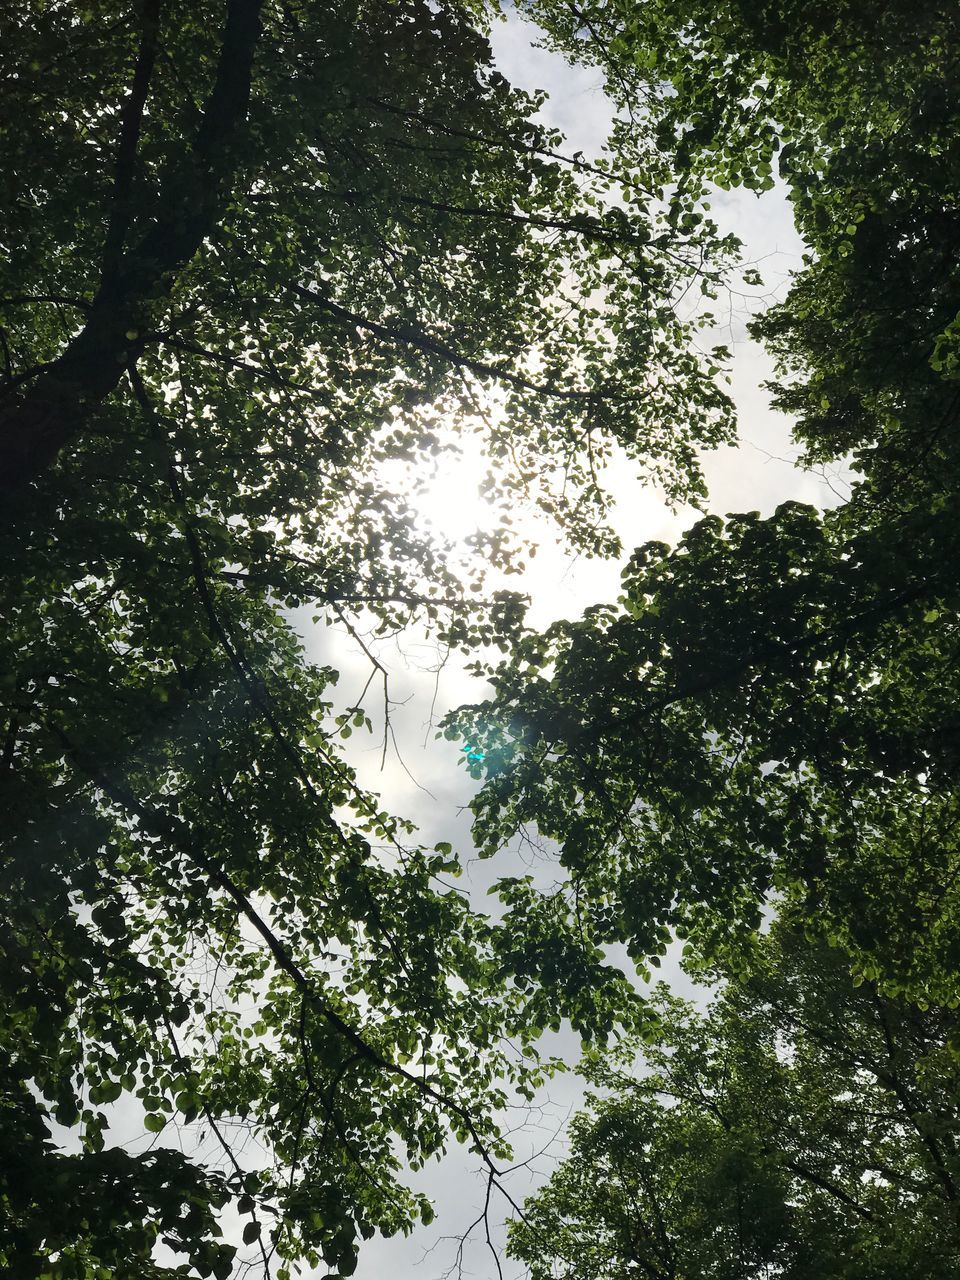 tree, low angle view, growth, branch, nature, day, beauty in nature, tranquility, outdoors, no people, forest, green color, sky